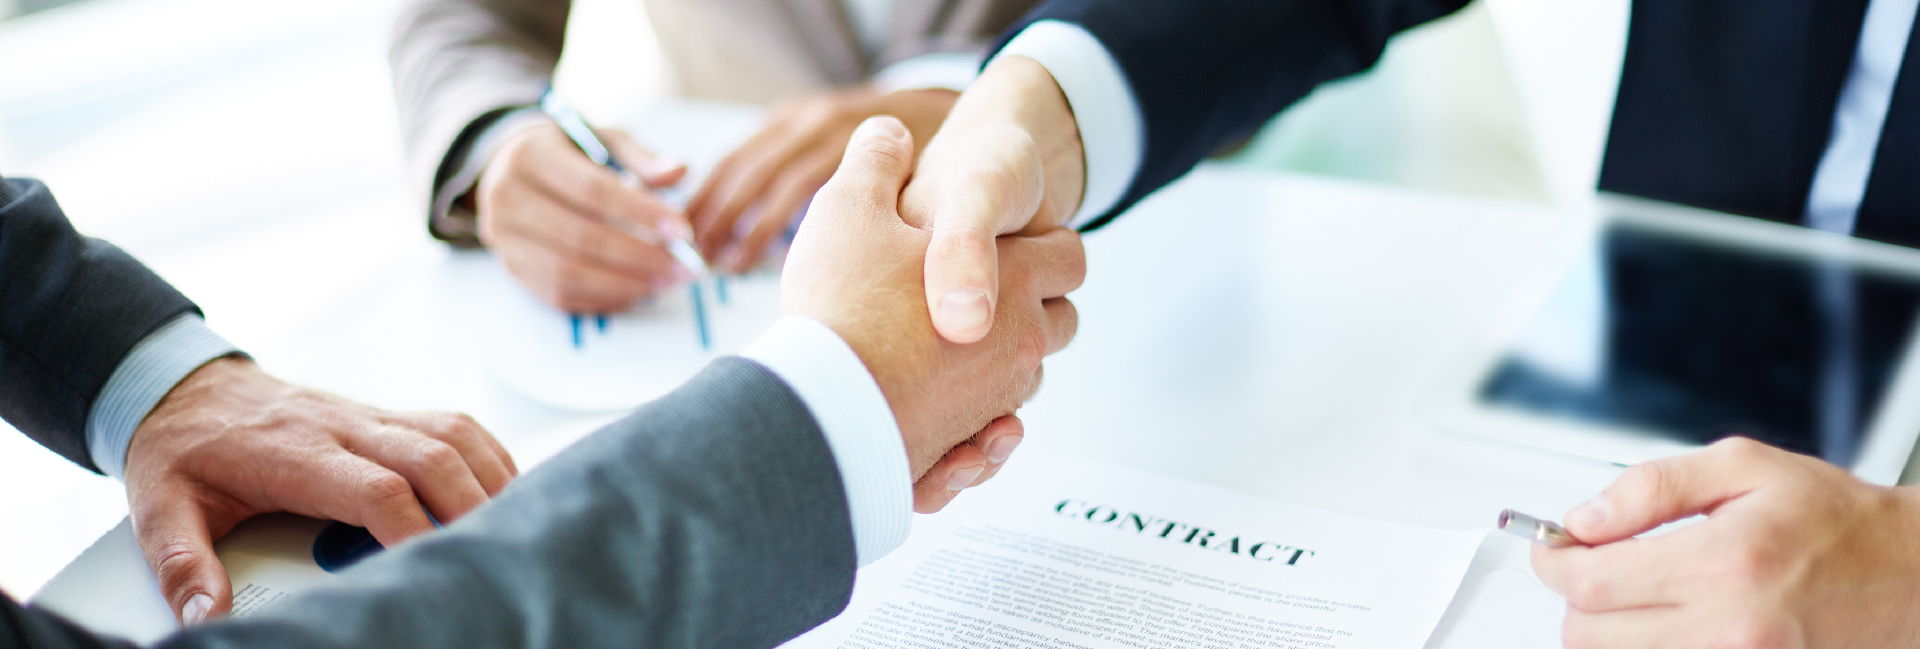 Two business professionals shake hands over an international trade contract.